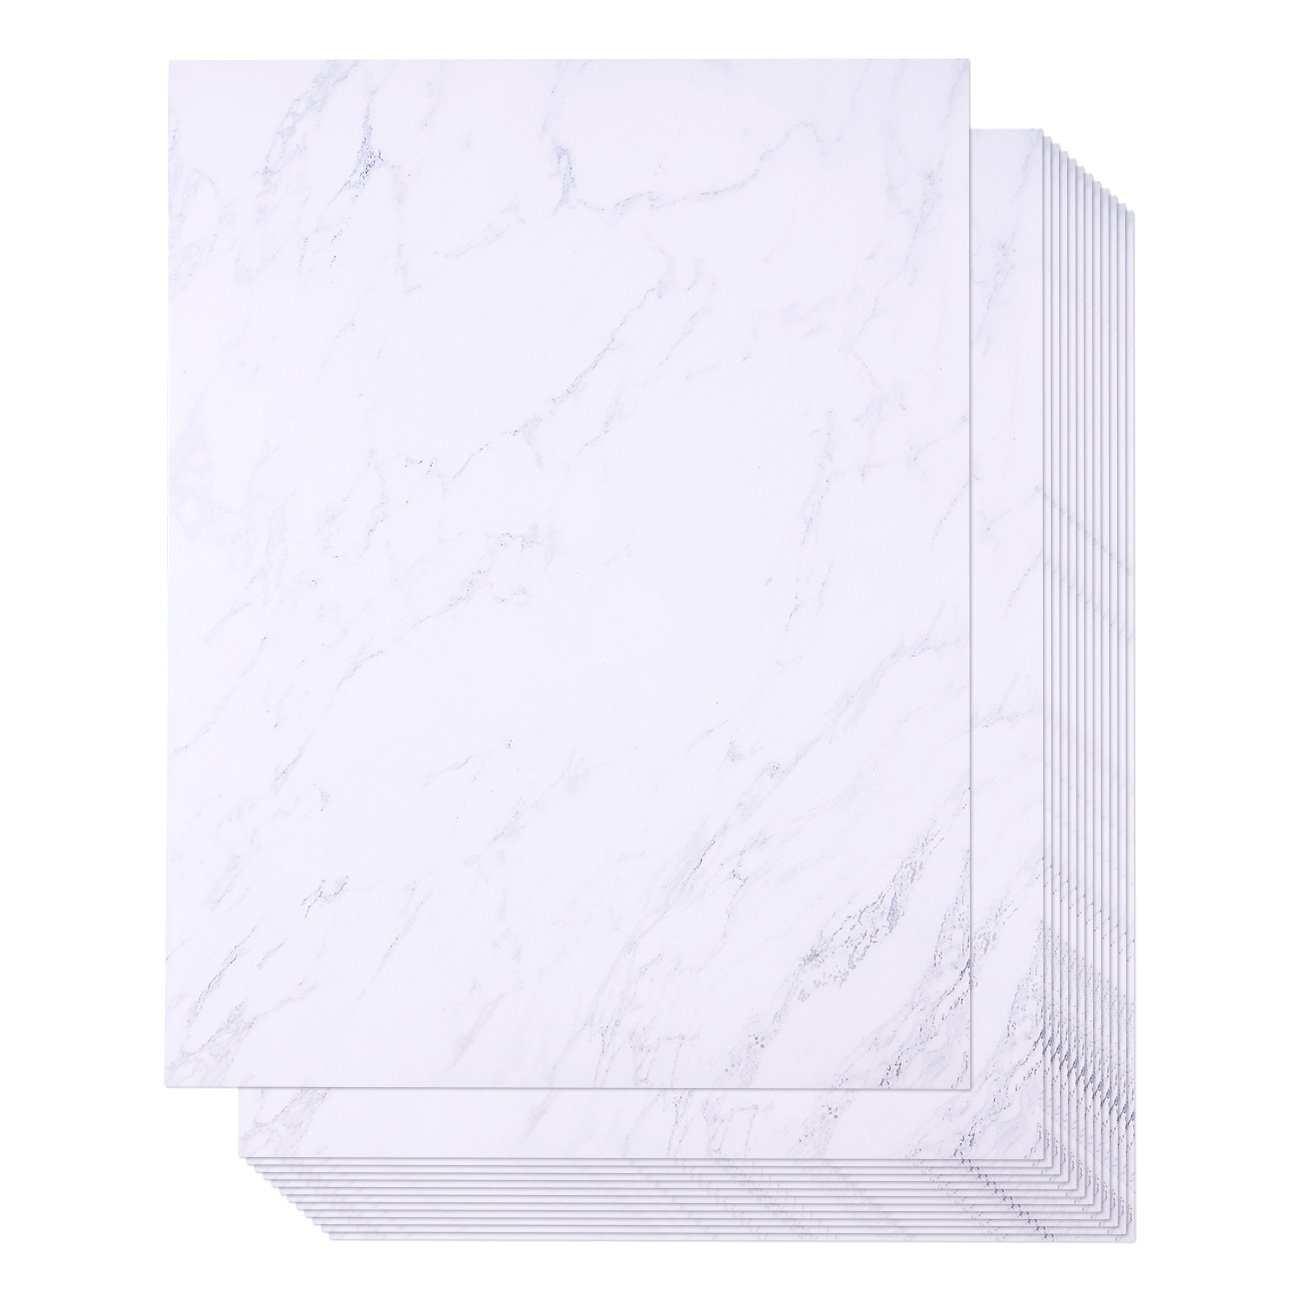 96 Pack Marble Stationery Paper - Letterhead - Decorative Design Paper - Double Sided - Printer Friendly, 8.5 x 11 Inch Letter Size Sheets by Juvale